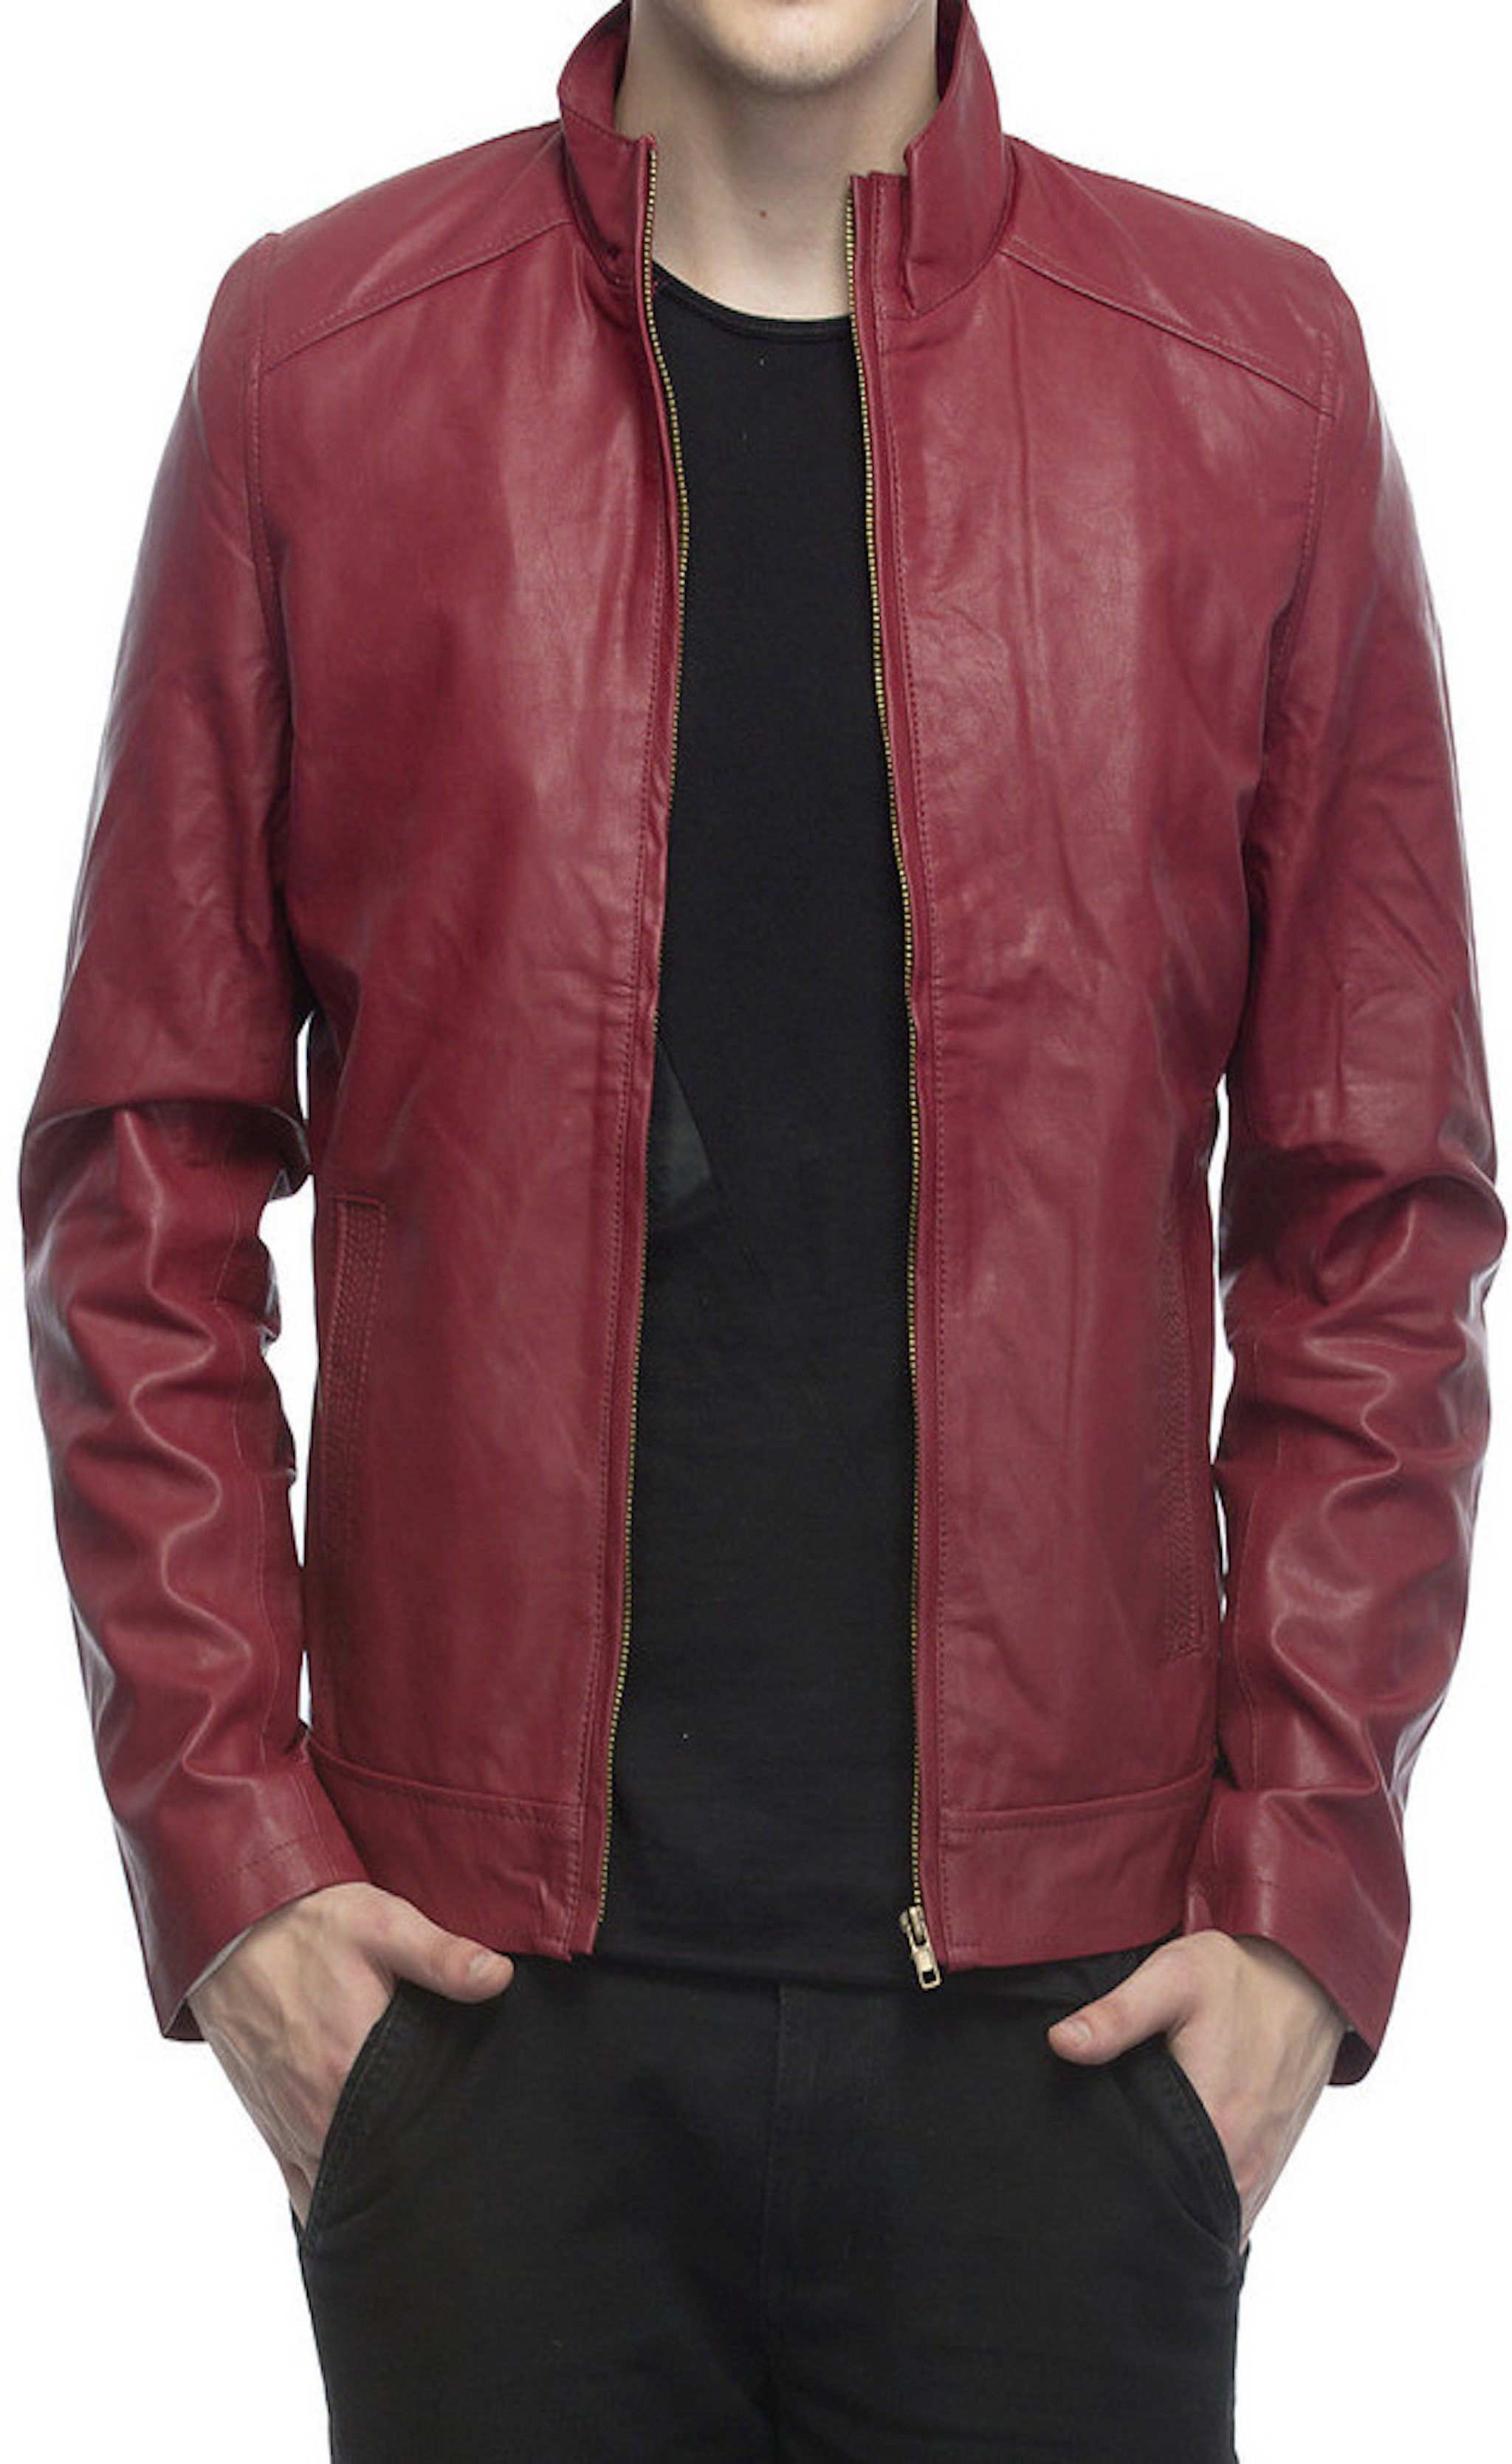 115769dc9 Solid men's jacket | Products | Jackets, Bomber jacket, Leather